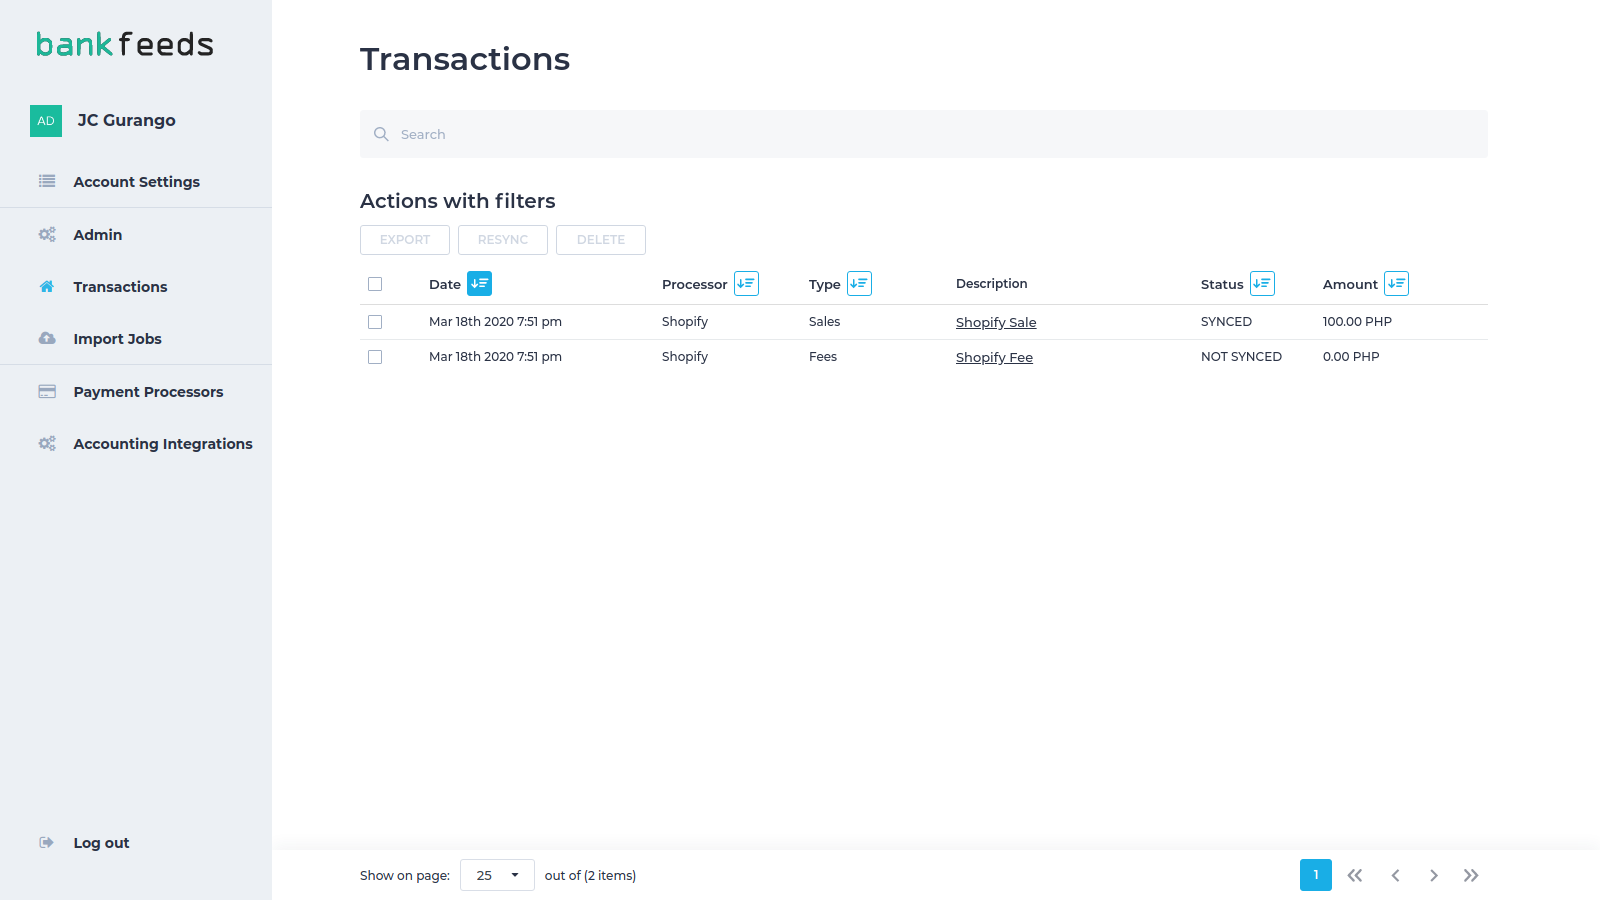 List of transactions imported into the app, and exported to Xero